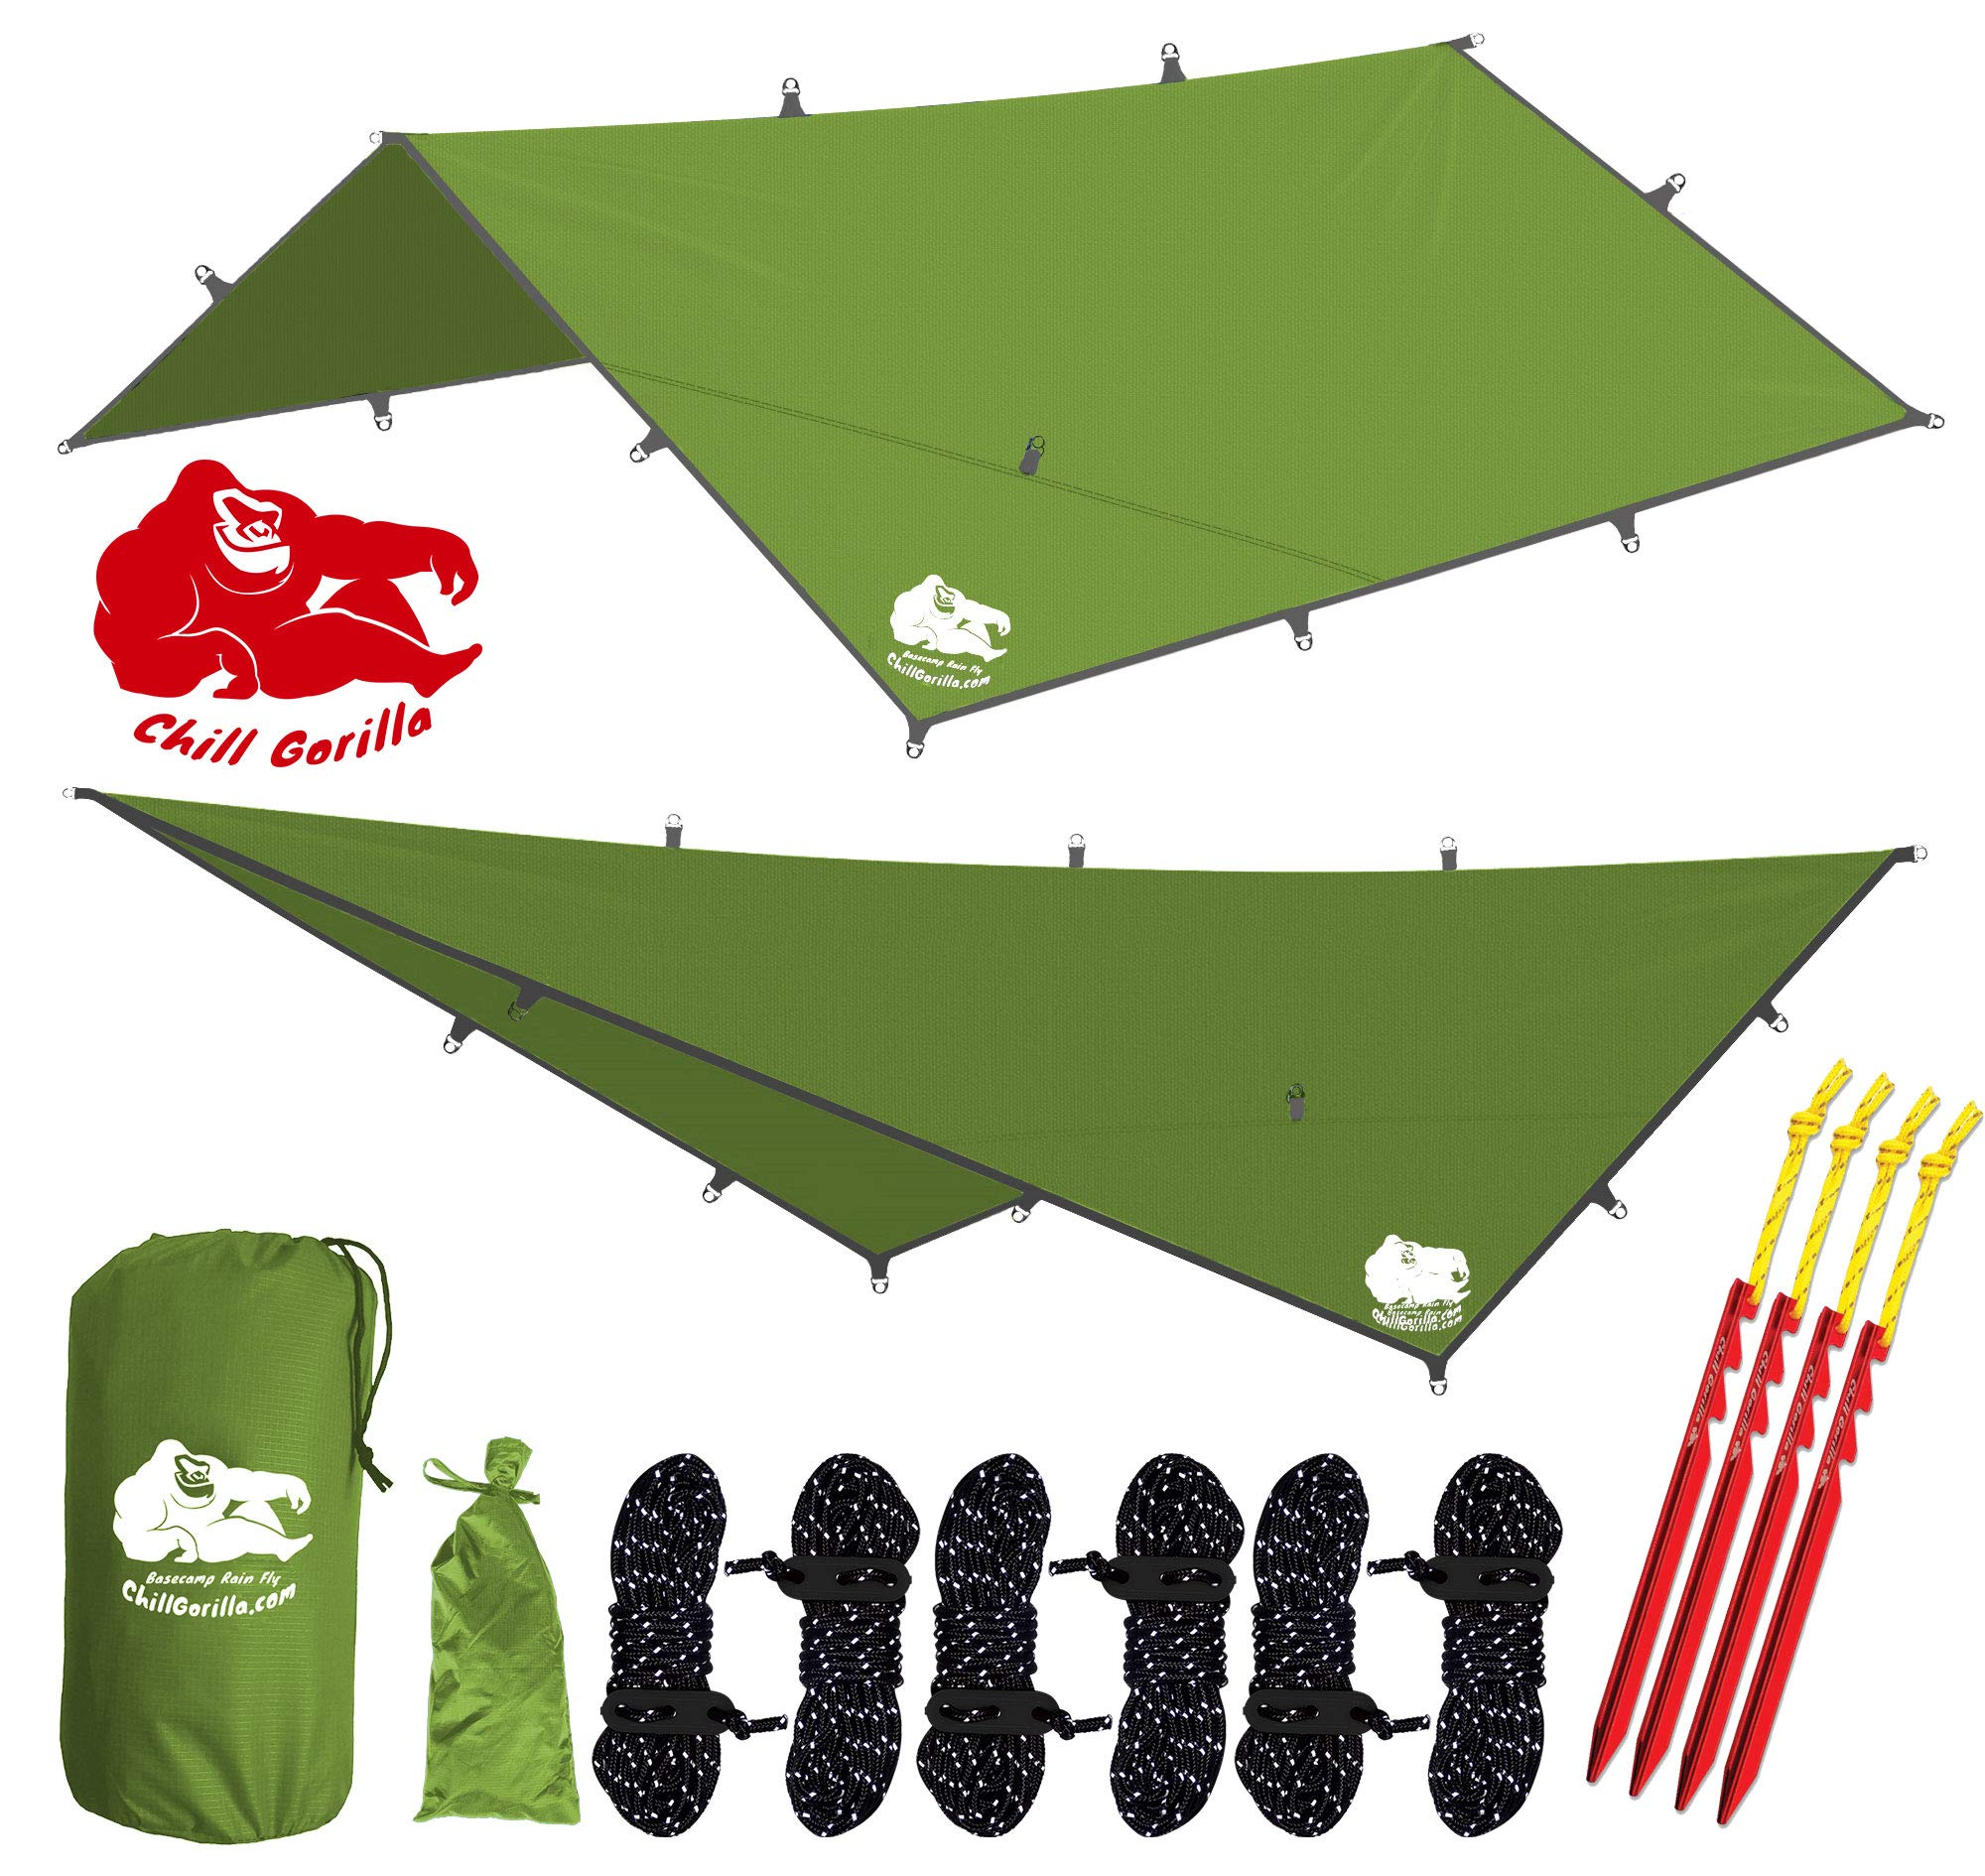 Chill Gorilla 12x12 Hammock Rain Fly Camping Tarp. Ripstop Nylon. 203'' Centerline. Stakes, Ropes & Tensioners Included. Camping Gear & Accessories. Perfect Hammock Tent. Green by Chill Gorilla